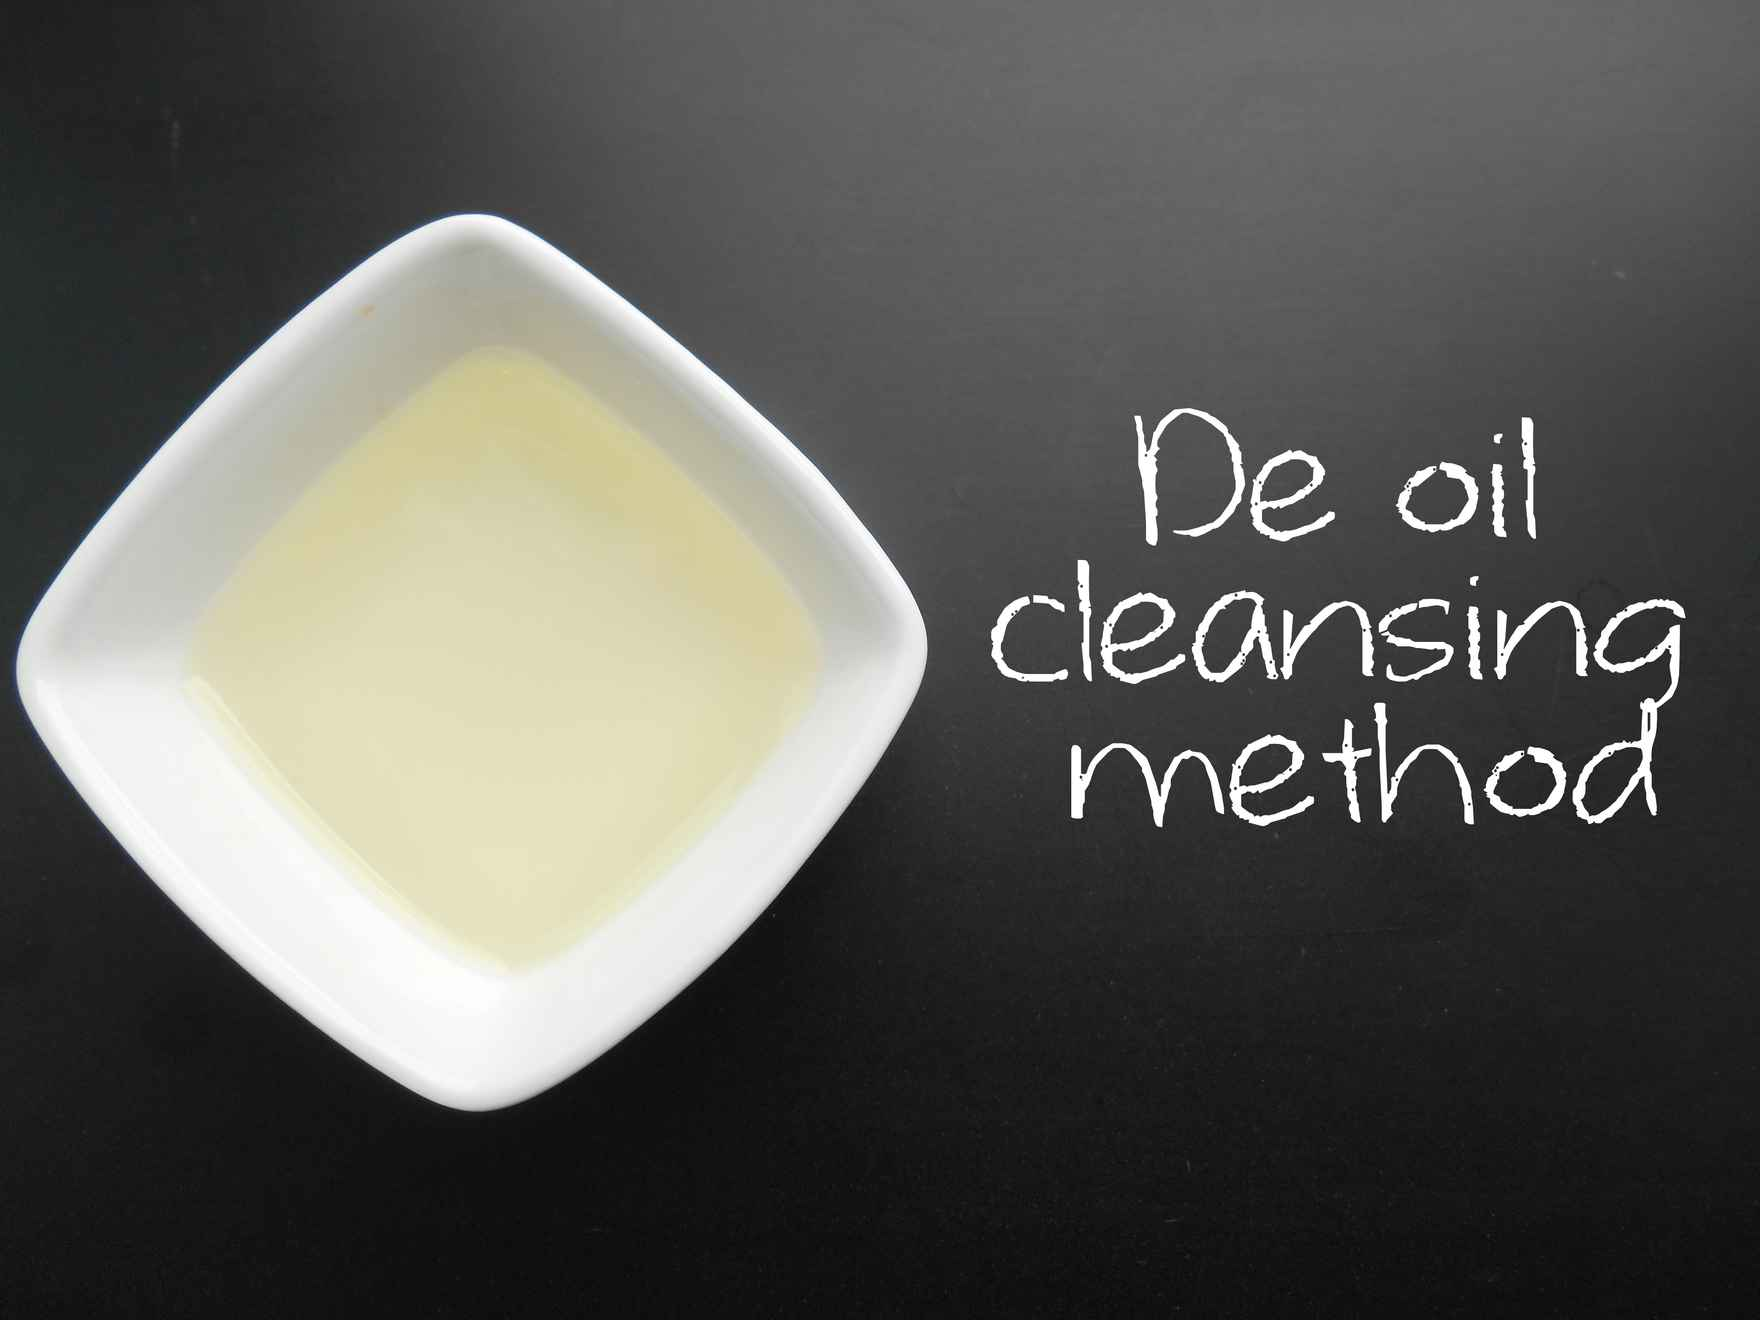 de-oil-cleansing-method-featured-image.jpg